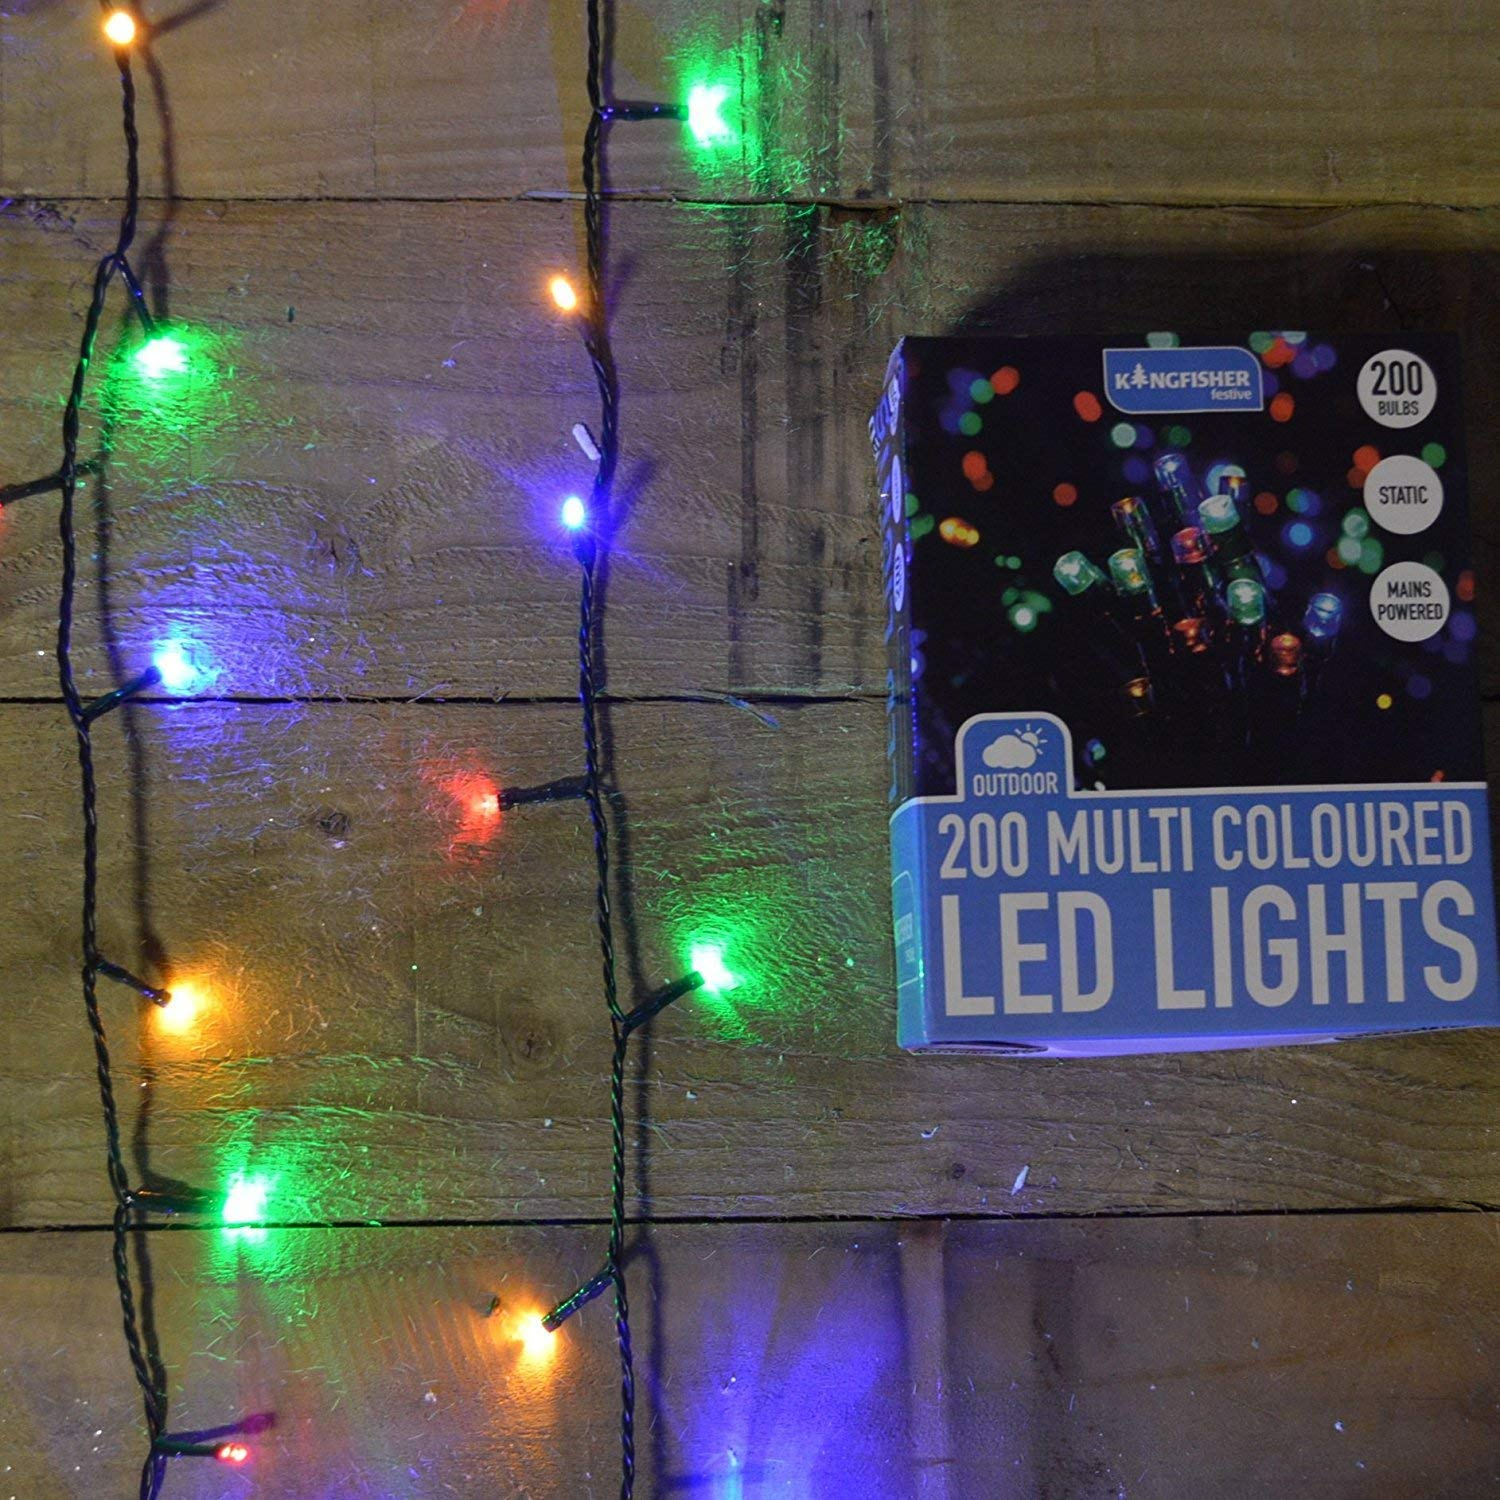 200 Multi Colored Static LED Christmas Lights - Outdoor or Indoor Kingfisher PROCL200MC